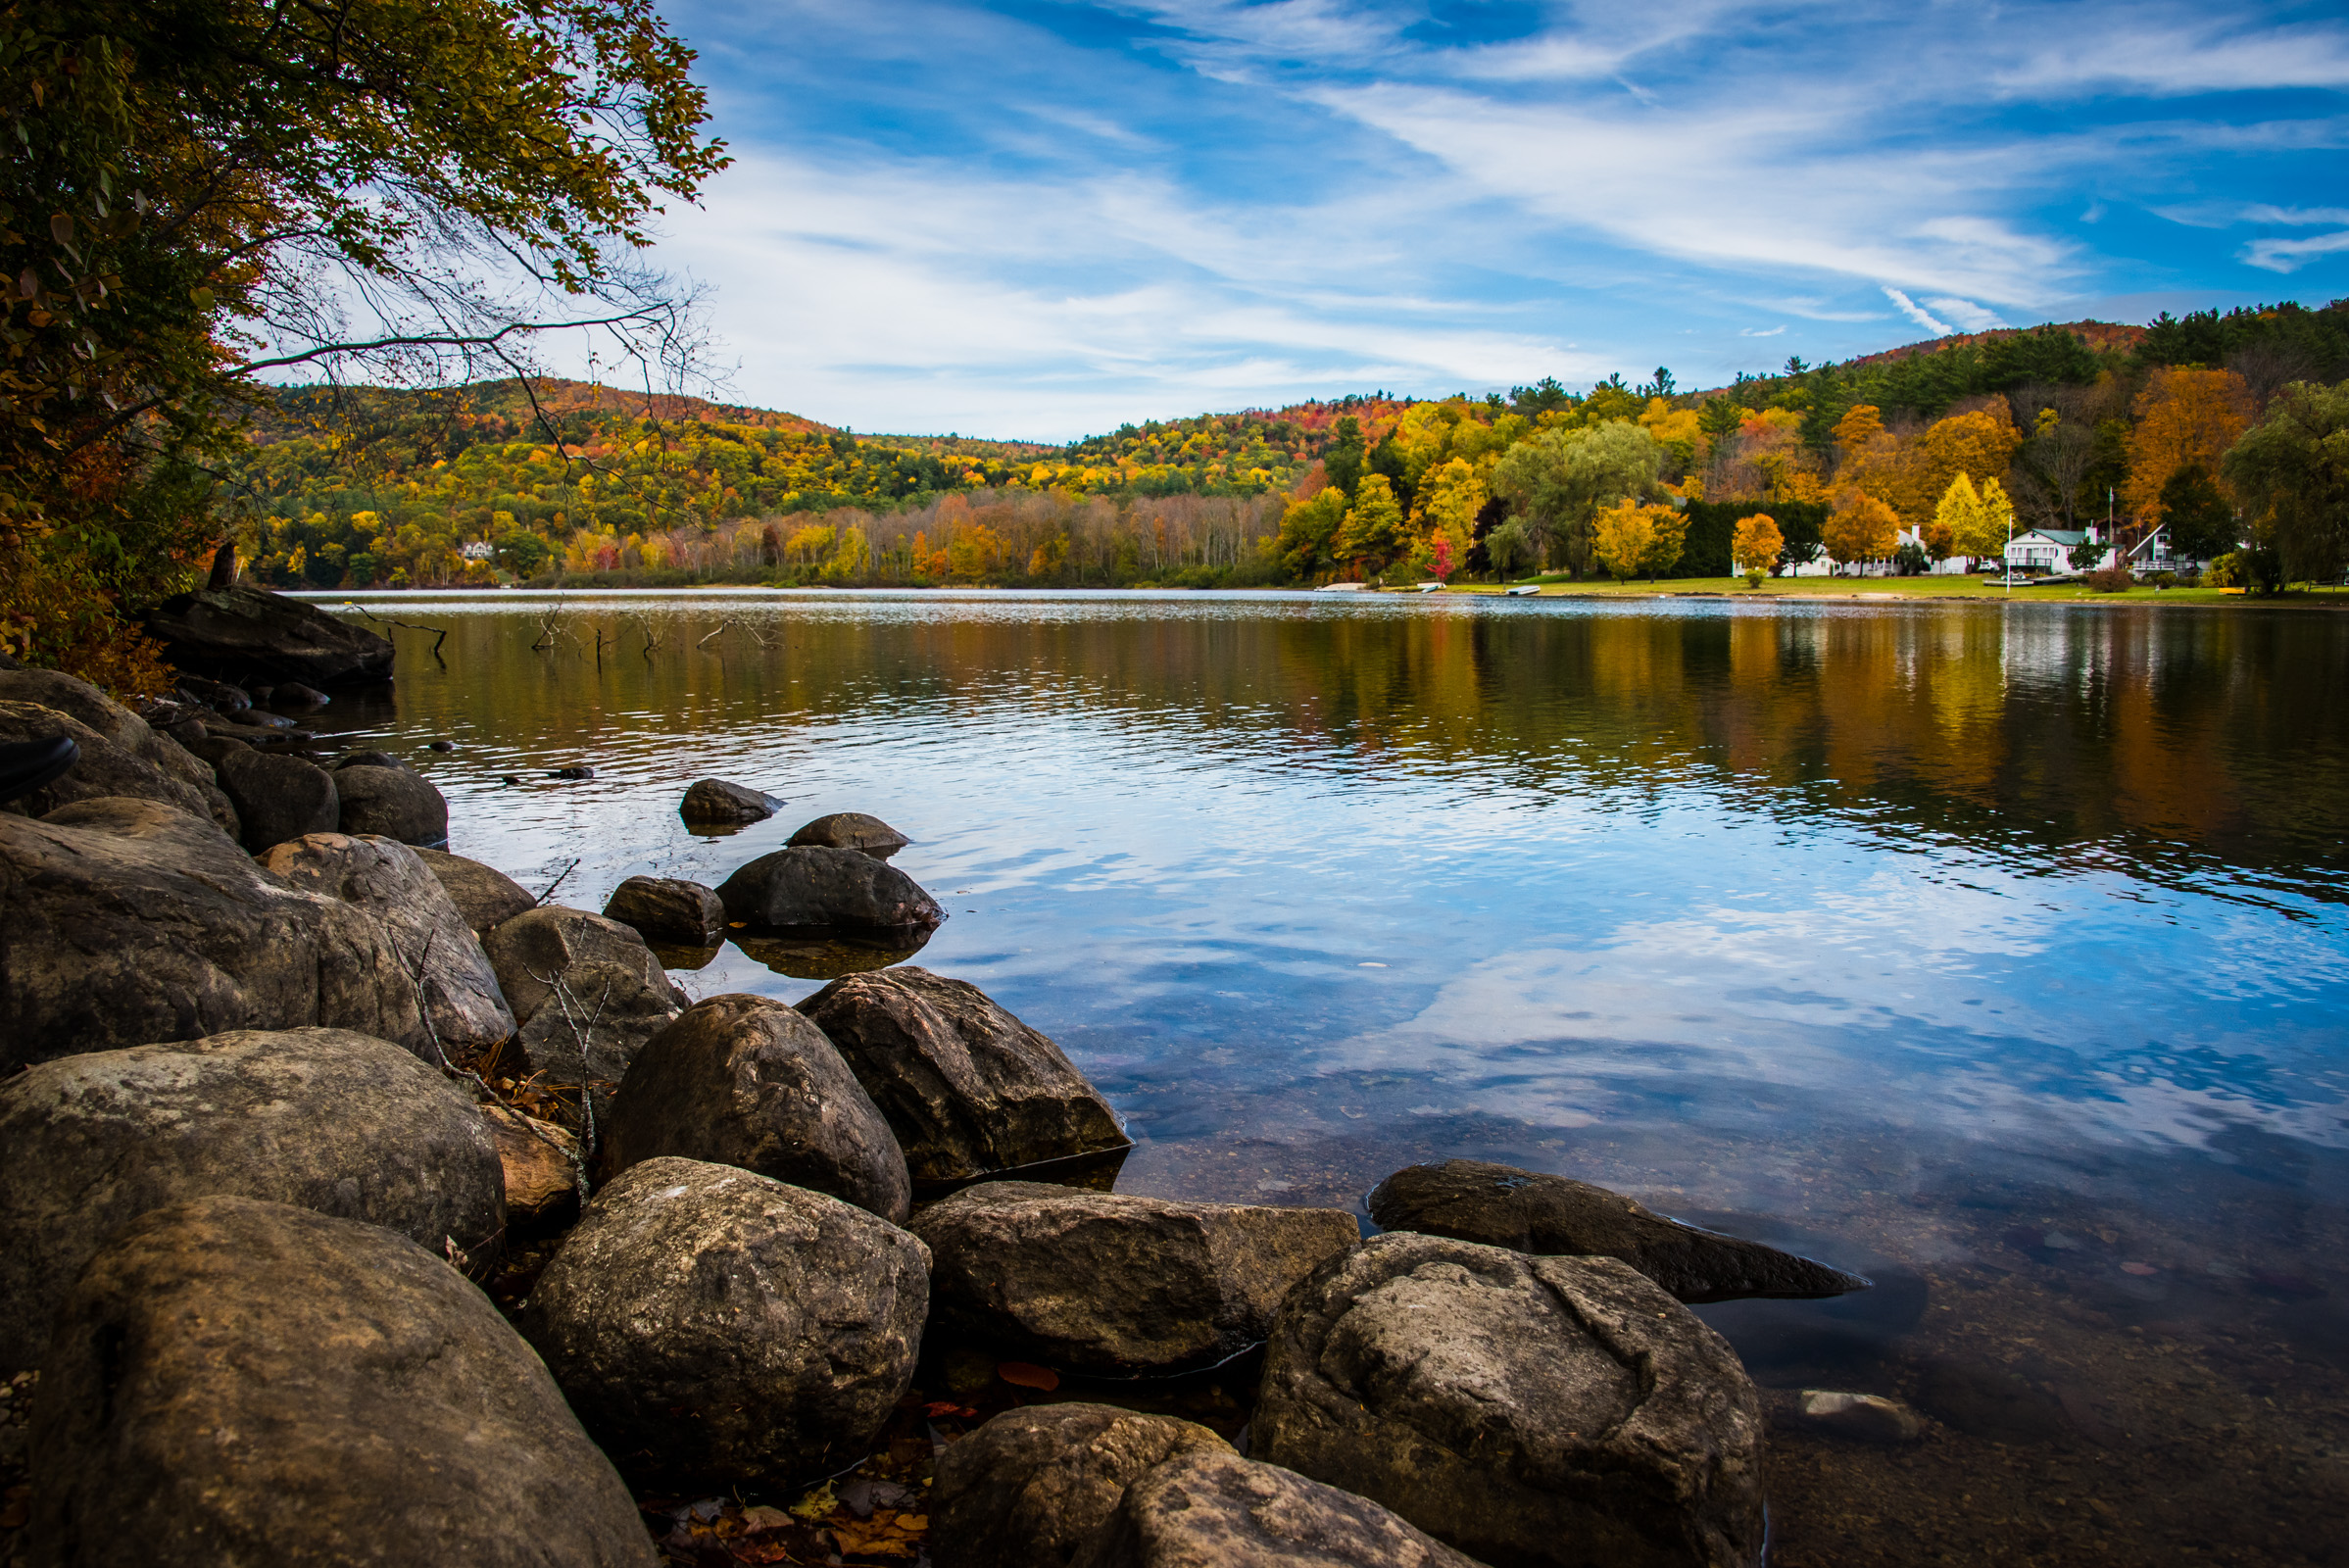 vermont landscape with colorful fall foliage reflecting in a lake, photographed by jamie bannon photography.